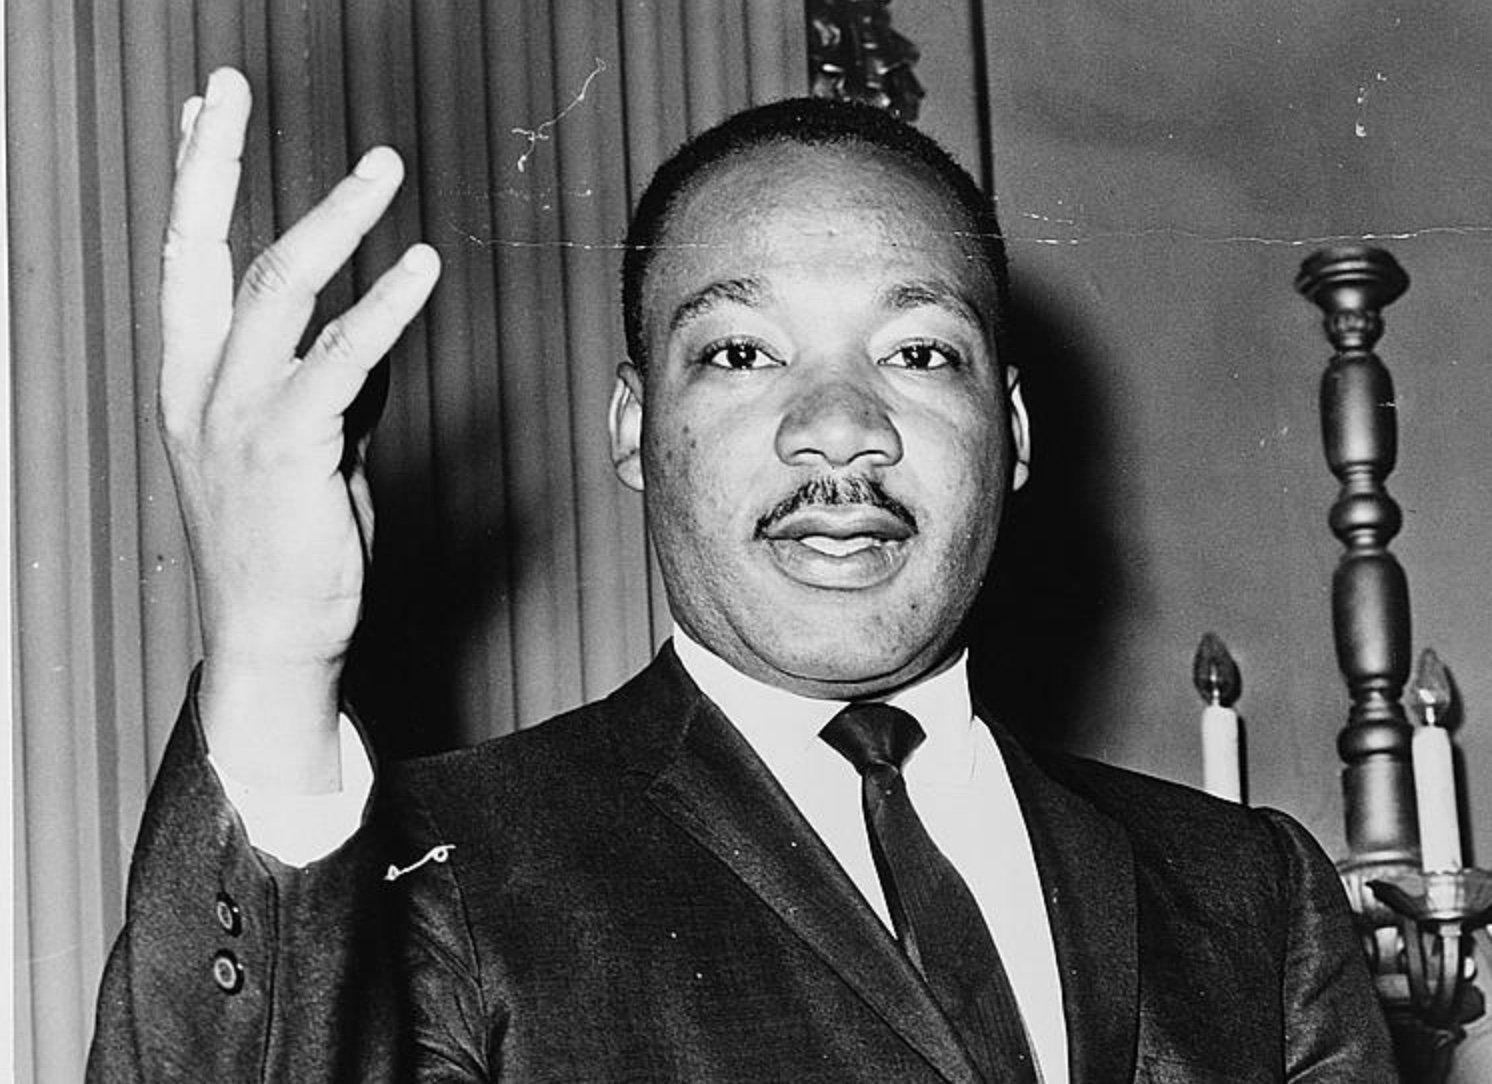 Martin Luther King and Israel, then and now